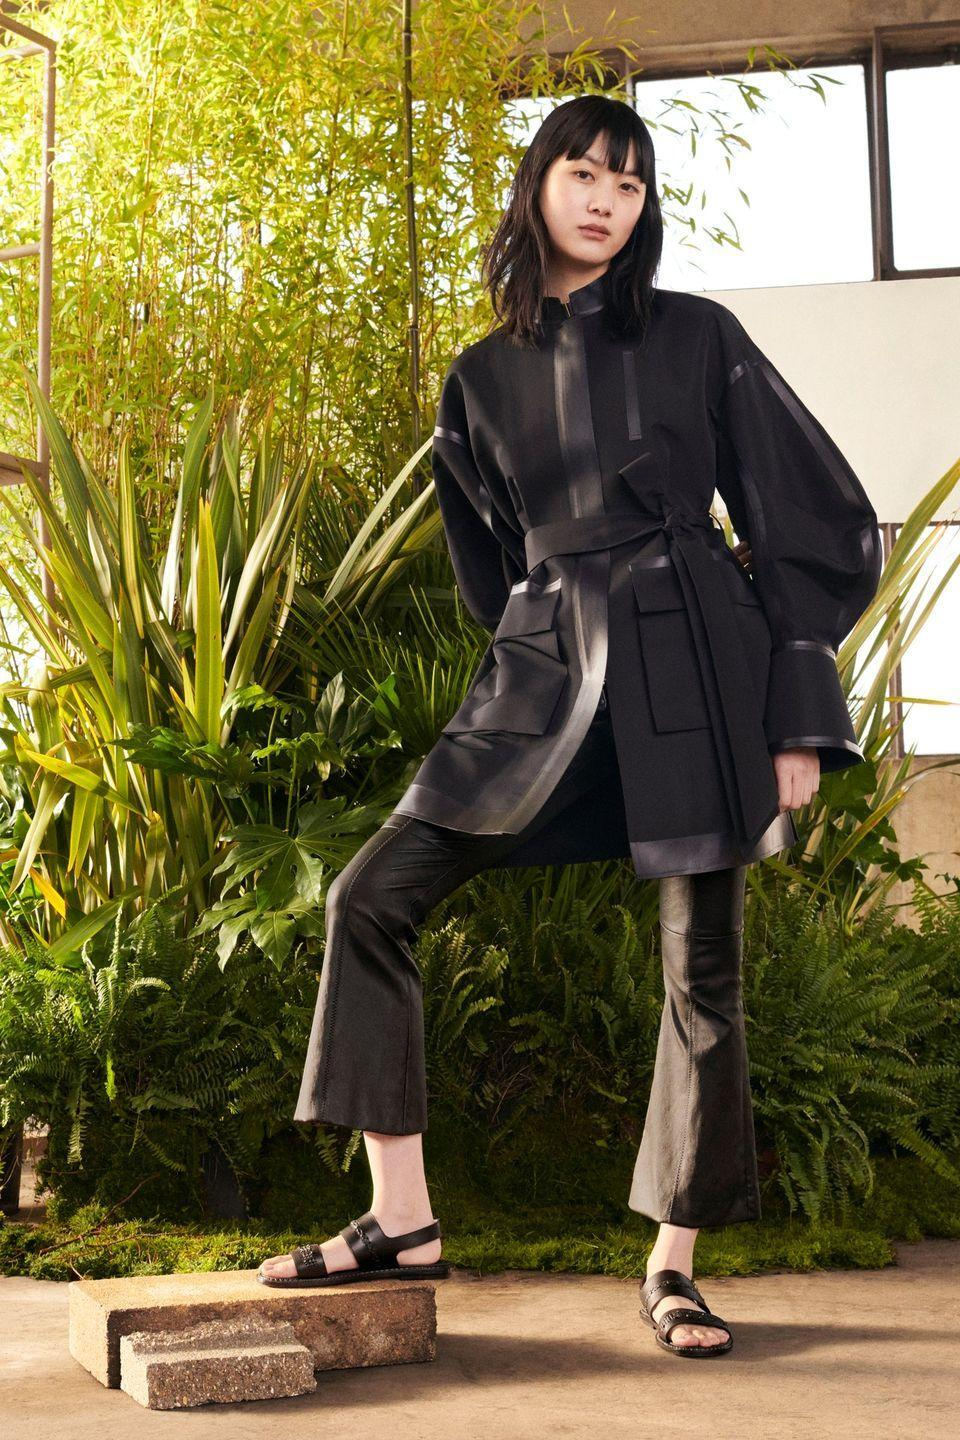 """<p>Italian luxury brand Tod's has unveiled a new collaboration as part of its of T Factory series, which first saw <a href=""""https://www.elle.com/uk/fashion/a28869411/alber-elbaz-tods-collection/"""" rel=""""nofollow noopener"""" target=""""_blank"""" data-ylk=""""slk:Alber Elbaz"""" class=""""link rapid-noclick-resp"""">Alber Elbaz</a> launch a capsule collection last year.</p><p>This time, Tod's has partnered with Japanese designer Mame Kurogouchi. Kurogouchi, based in Tokyo, cleverly fuses romanticism with Japanese tradition in a way that's modern. Her work is soft and light, with gauzy dresses and richly coloured silks. Her work is understatedly cool too. </p><p>That's what Kurogouchi will bring to Tod's signature styles with this collaboration, reinterpreting its gum-soled driving shoe, as well as designing original accessories. </p><p>'I think craftsmanship is the new logo,' the designer says. So the styles, like those at her own brand, feature minimal branding, letting details such as a leather embroidery technique that echoes traditional kogin zashi quilting stand out. <br></p><p><a href=""""https://go.redirectingat.com?id=127X1599956&url=https%3A%2F%2Fwww.tods.com%2Fus-en%2Fhome.html&sref=https%3A%2F%2Fwww.elle.com%2Fuk%2Ffashion%2Fg31095508%2Findustry-update%2F"""" rel=""""nofollow noopener"""" target=""""_blank"""" data-ylk=""""slk:Tods.com"""" class=""""link rapid-noclick-resp"""">Tods.com </a></p>"""